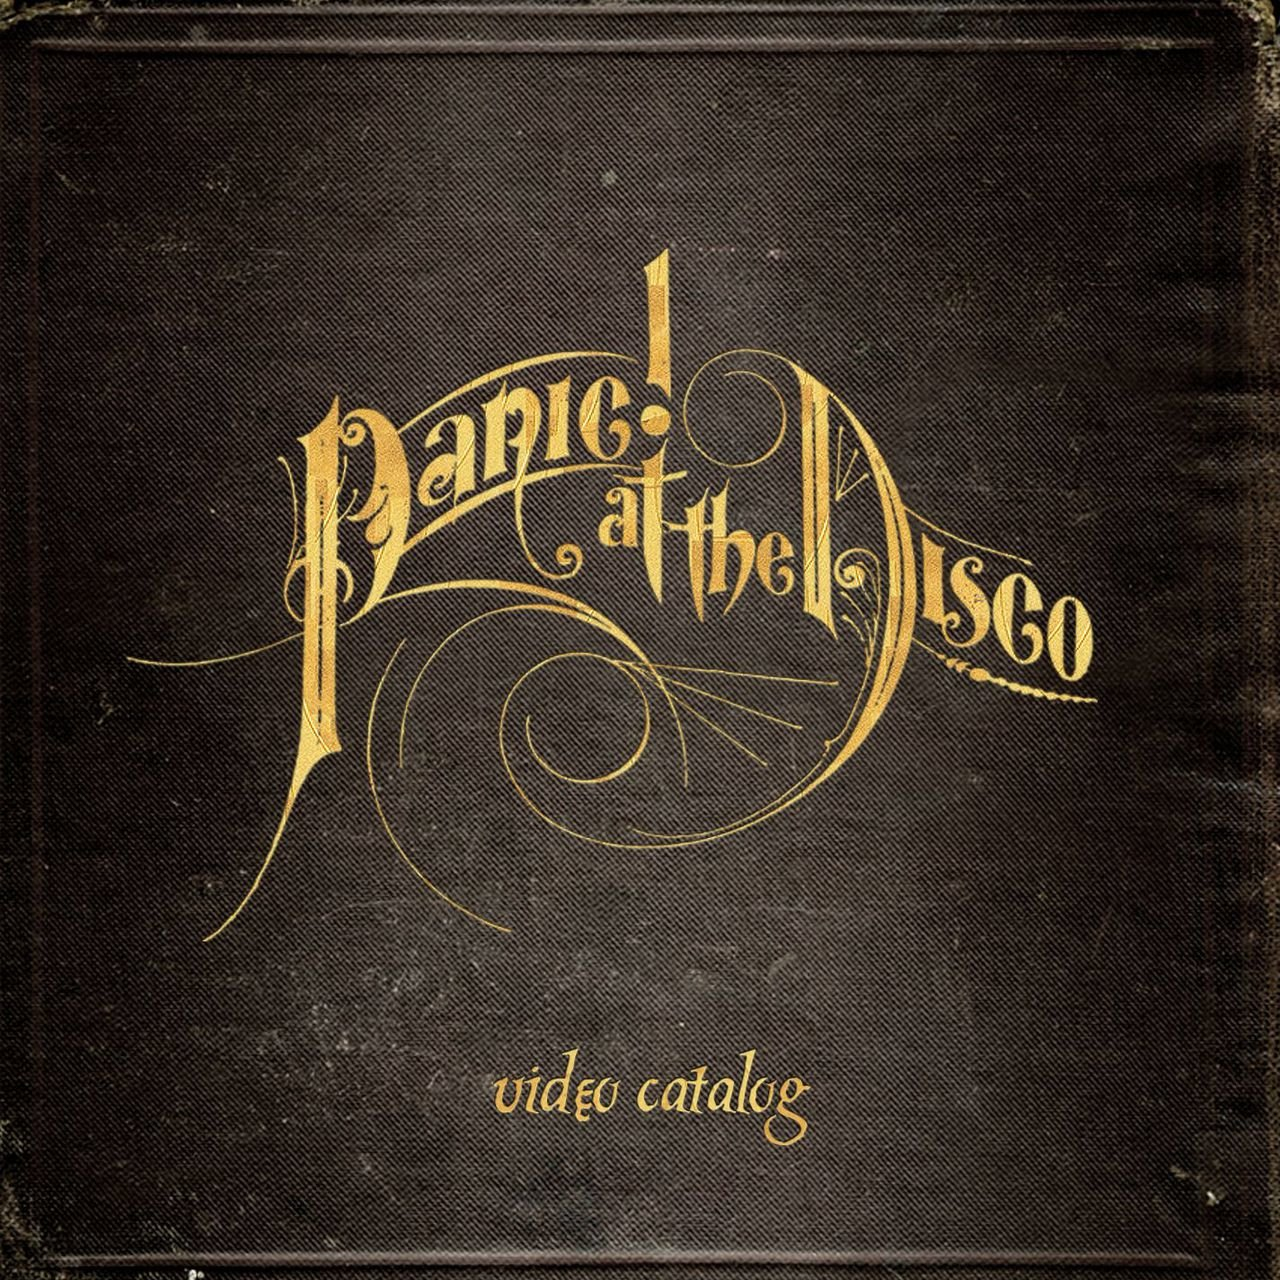 Panic! At The Disco Video Catalog